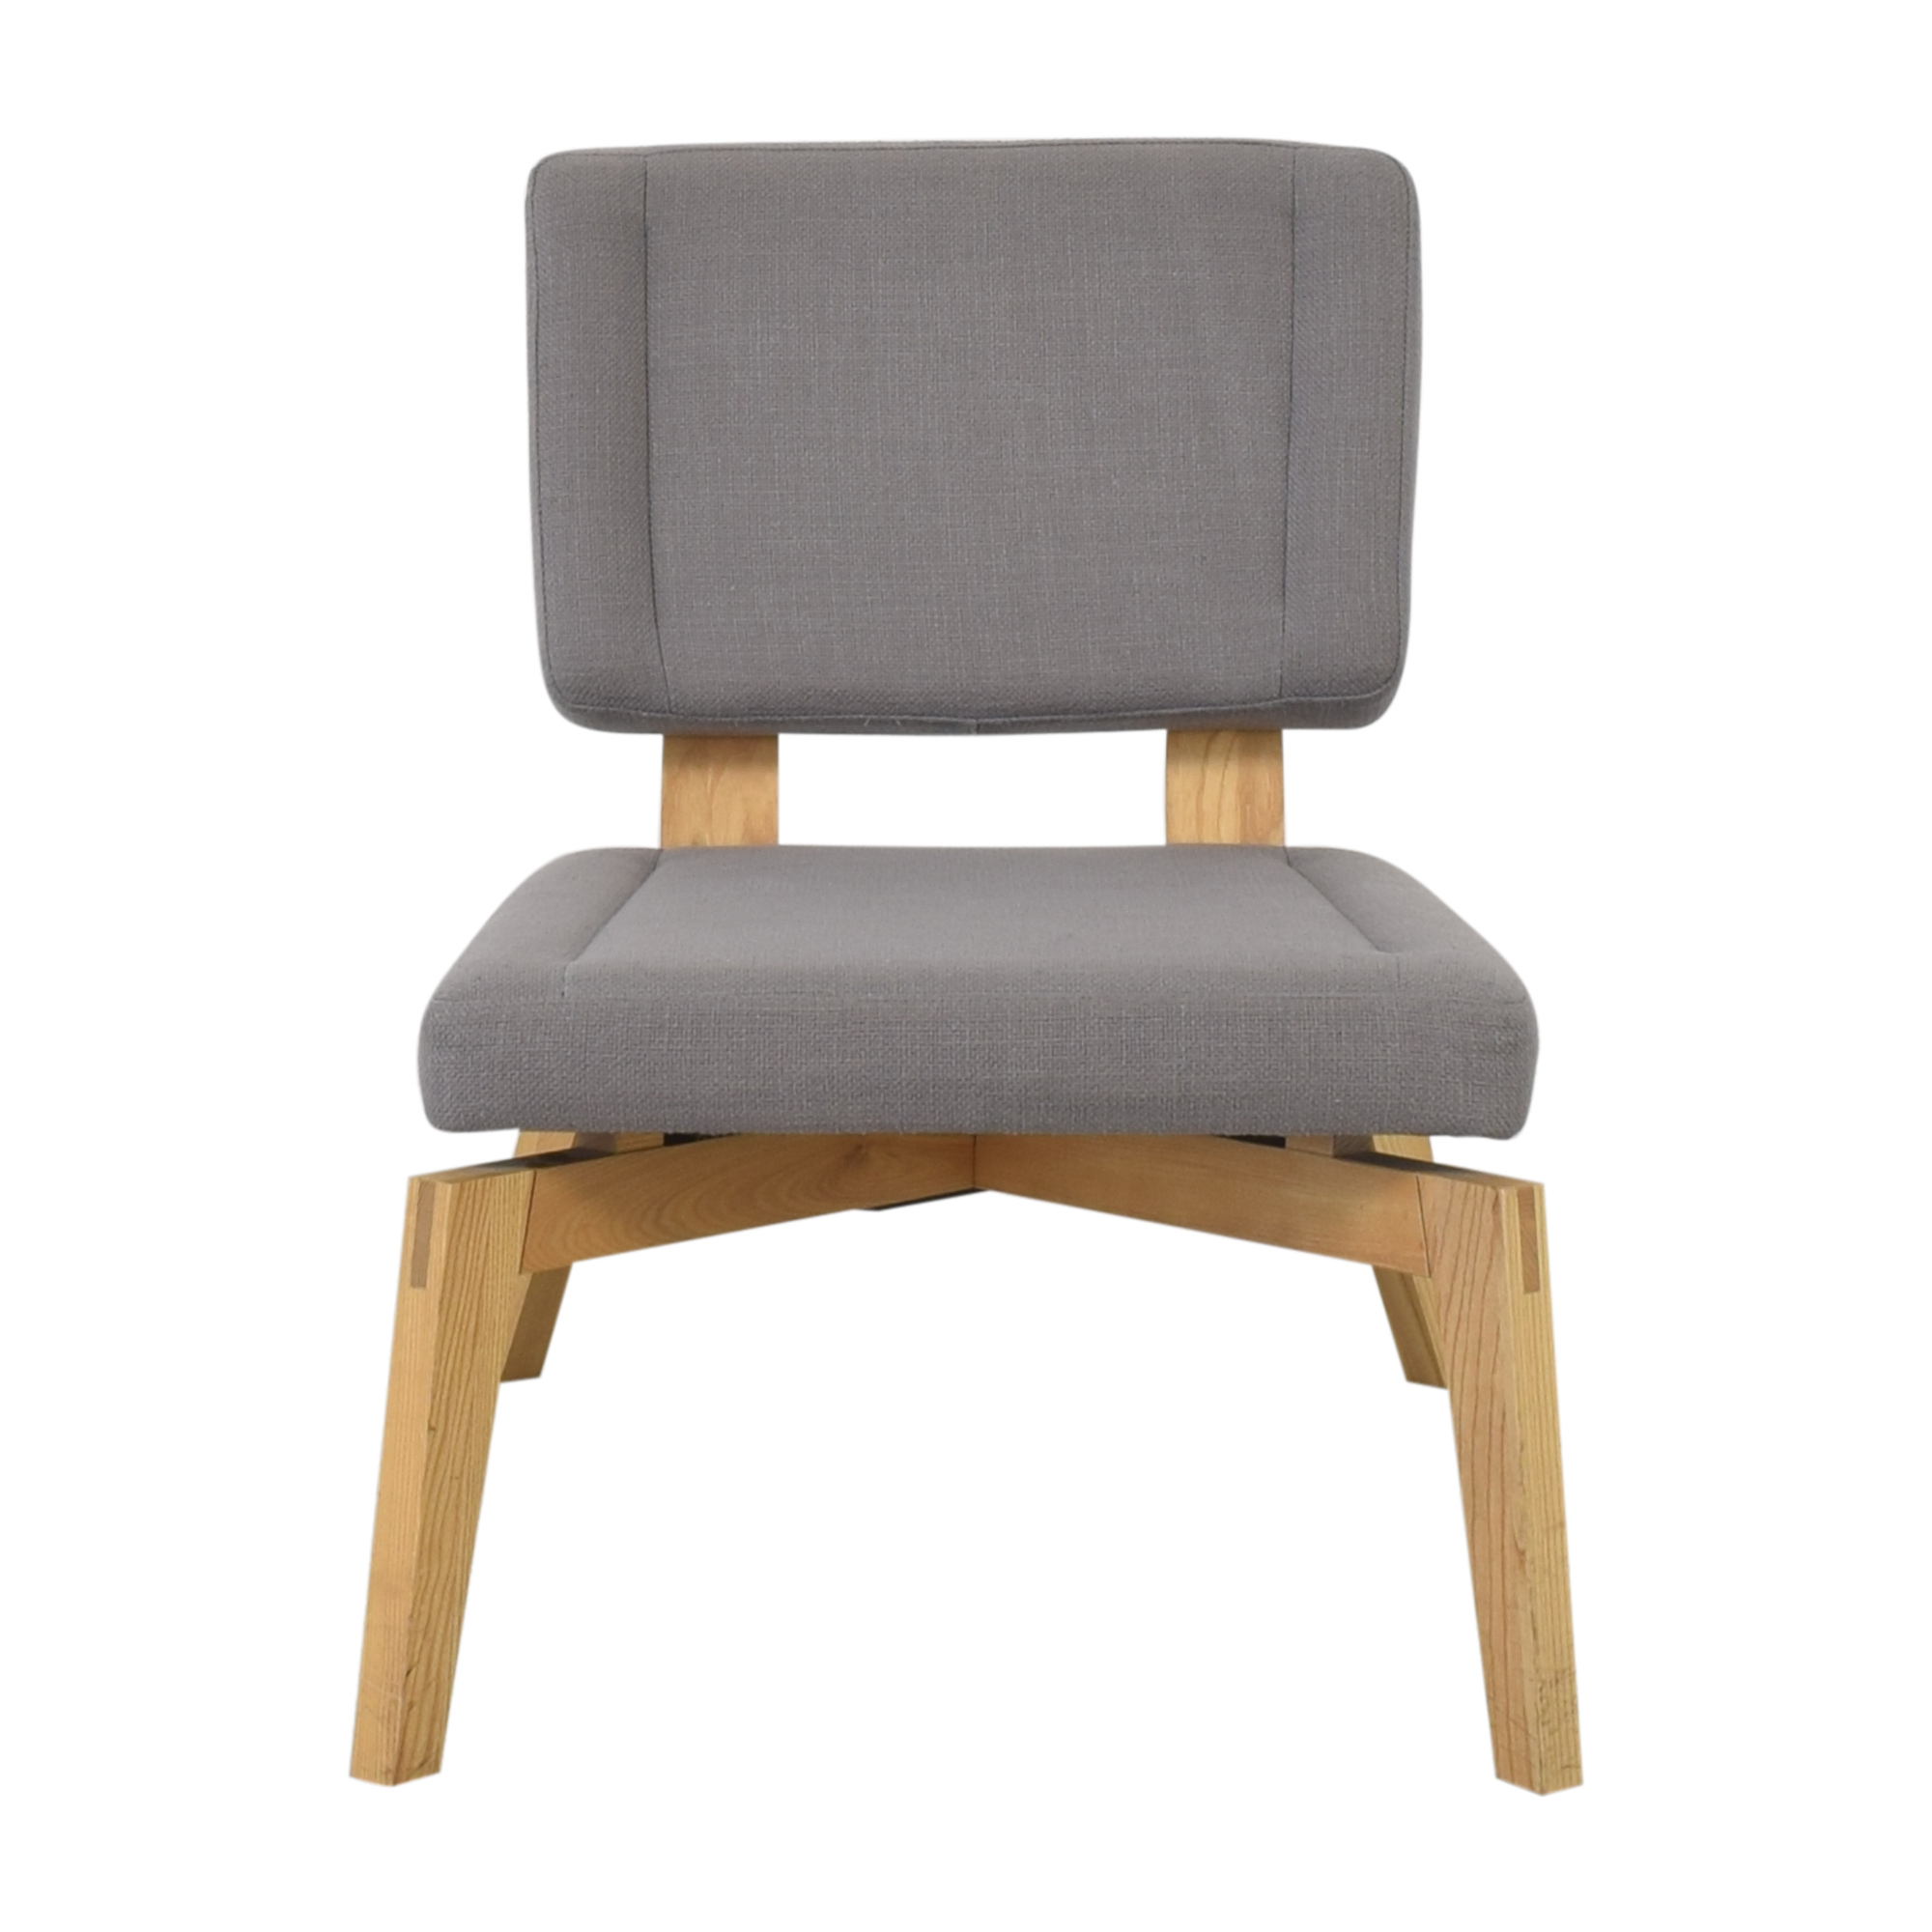 CB2 CB2 Lounge Chair second hand